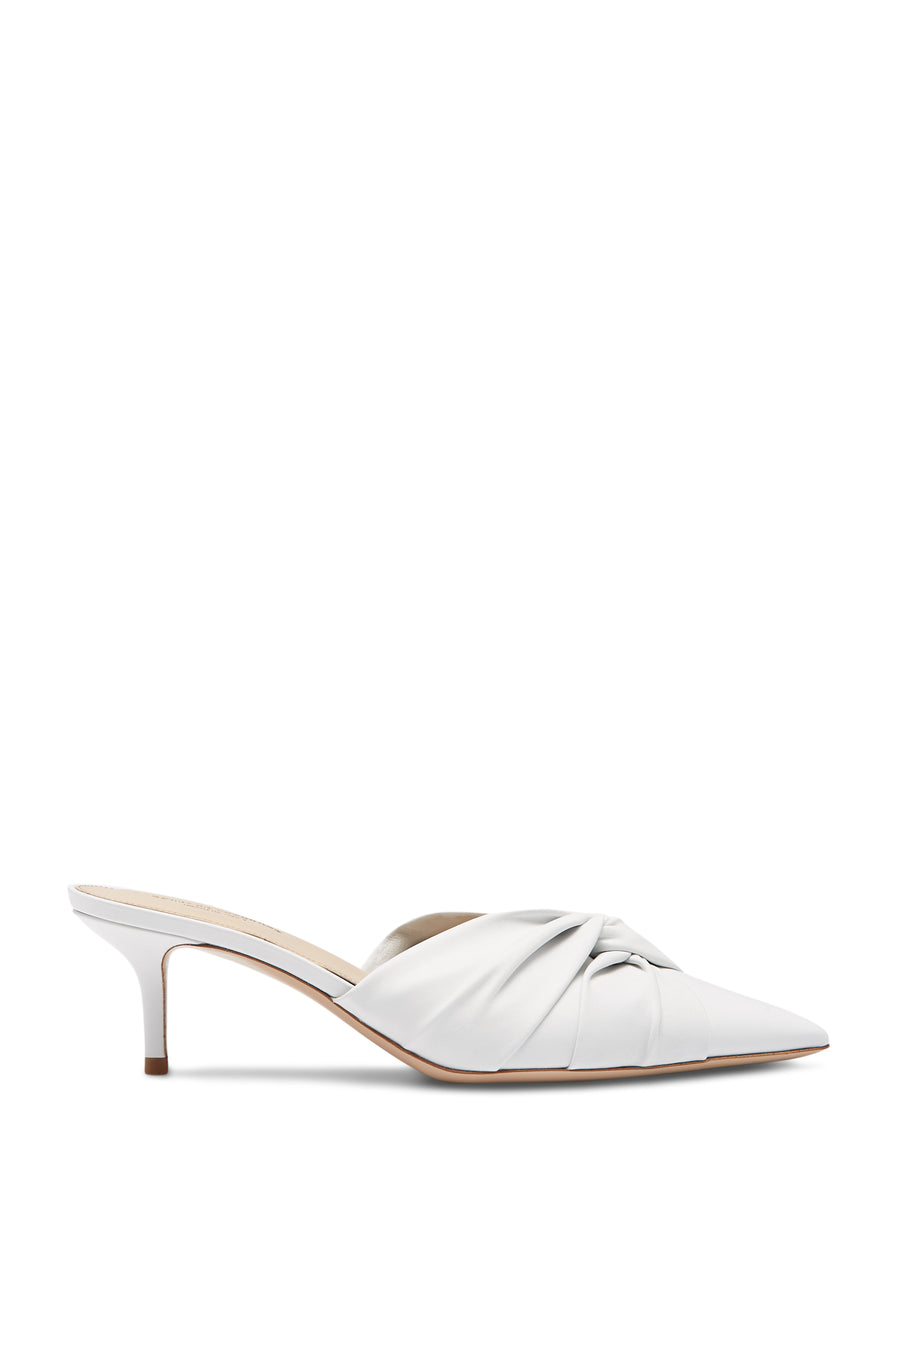 Mule, Calf Leather, White Color, Twisted Leather Detail